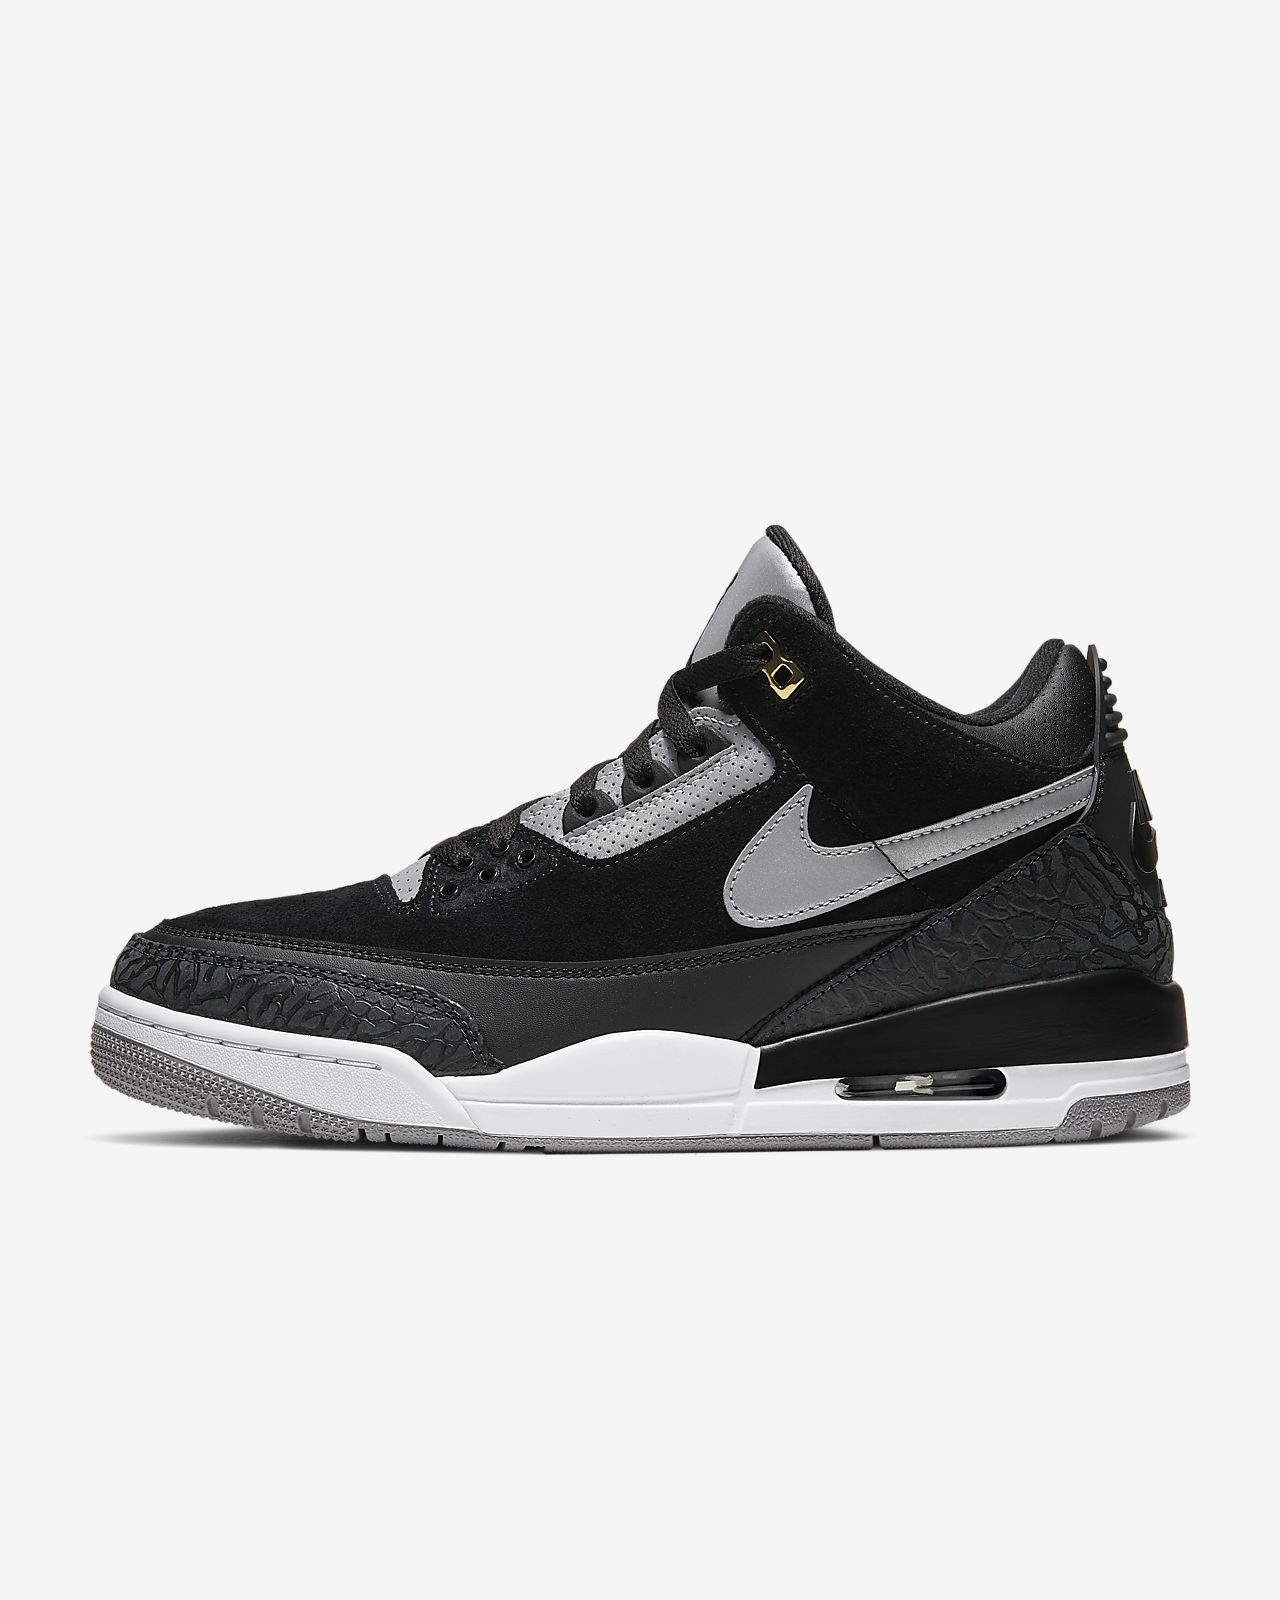 Air Jordan 3 Retro Tinker Men's Shoe